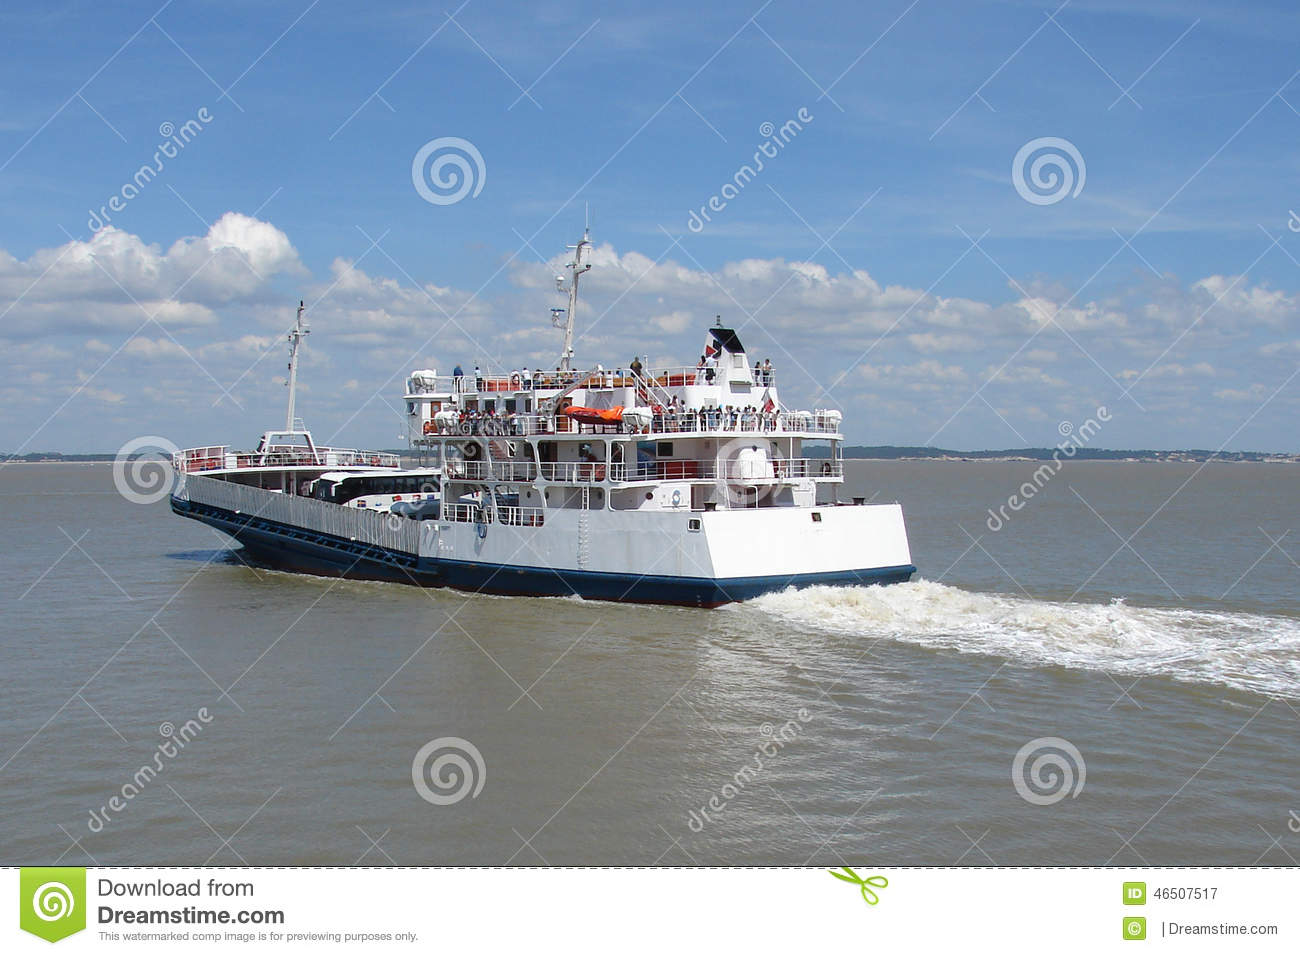 Cruise Ship And Small Boat On A Pier Norway_Travel Stock Photography  Carto